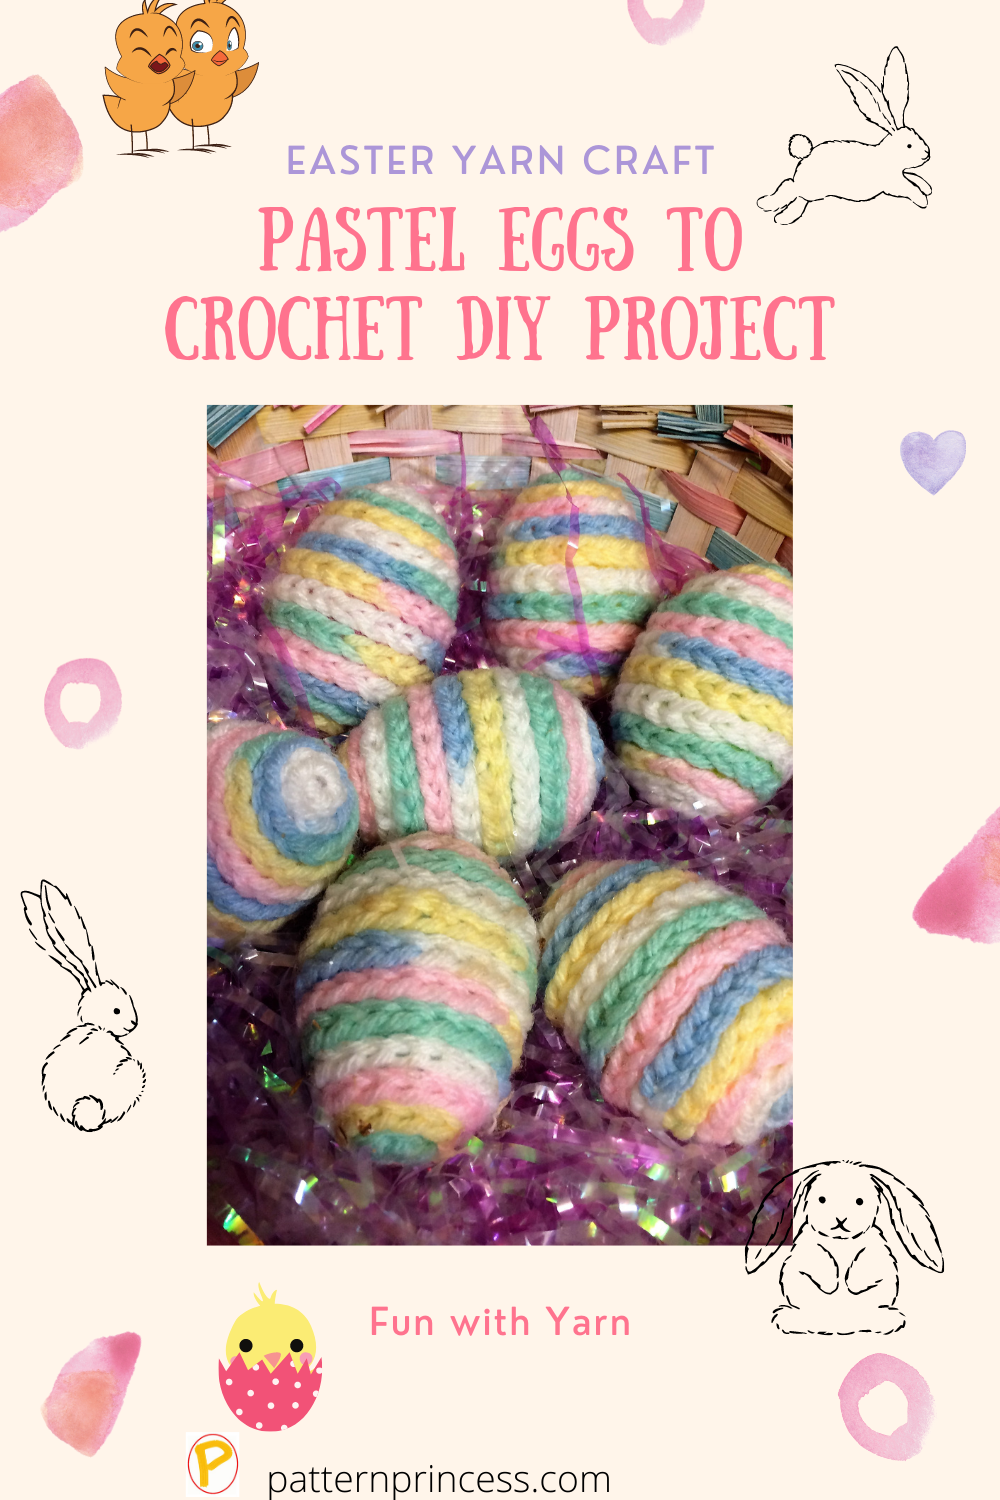 Pastel Eggs to Crochet DIY Project